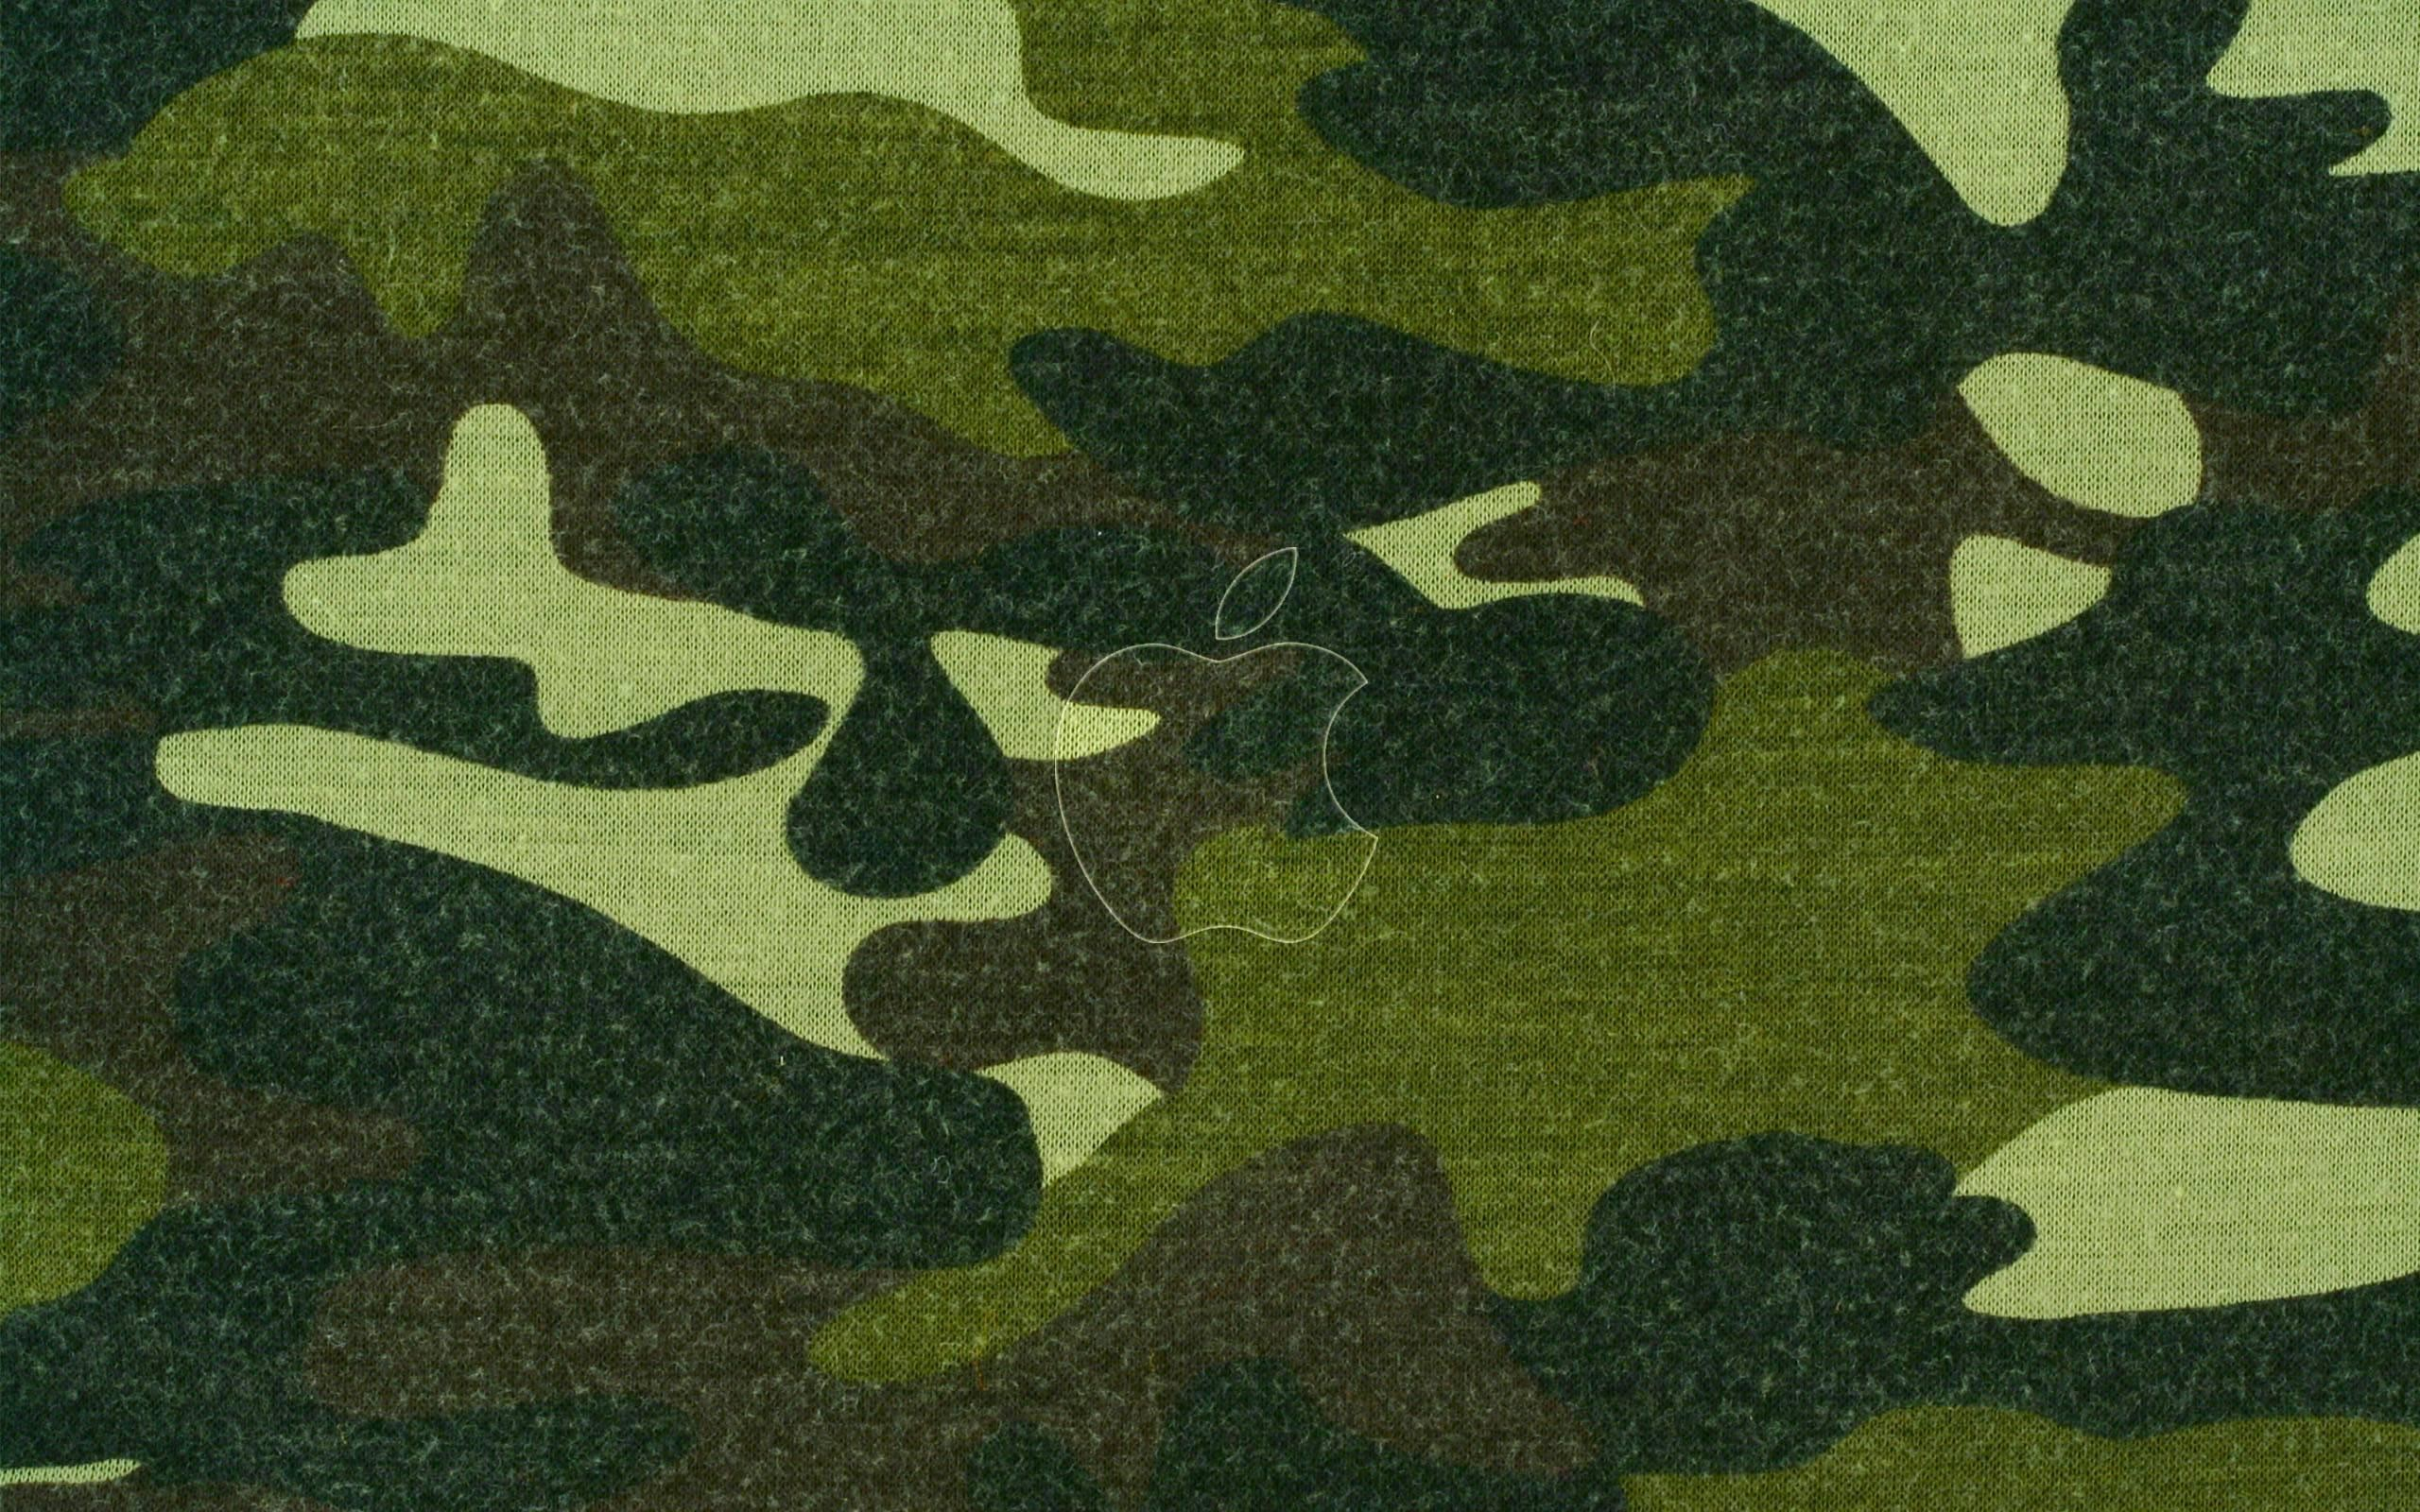 Camouflage background download free awesome wallpapers for best camouflage background 1920x1080 computer voltagebd Gallery